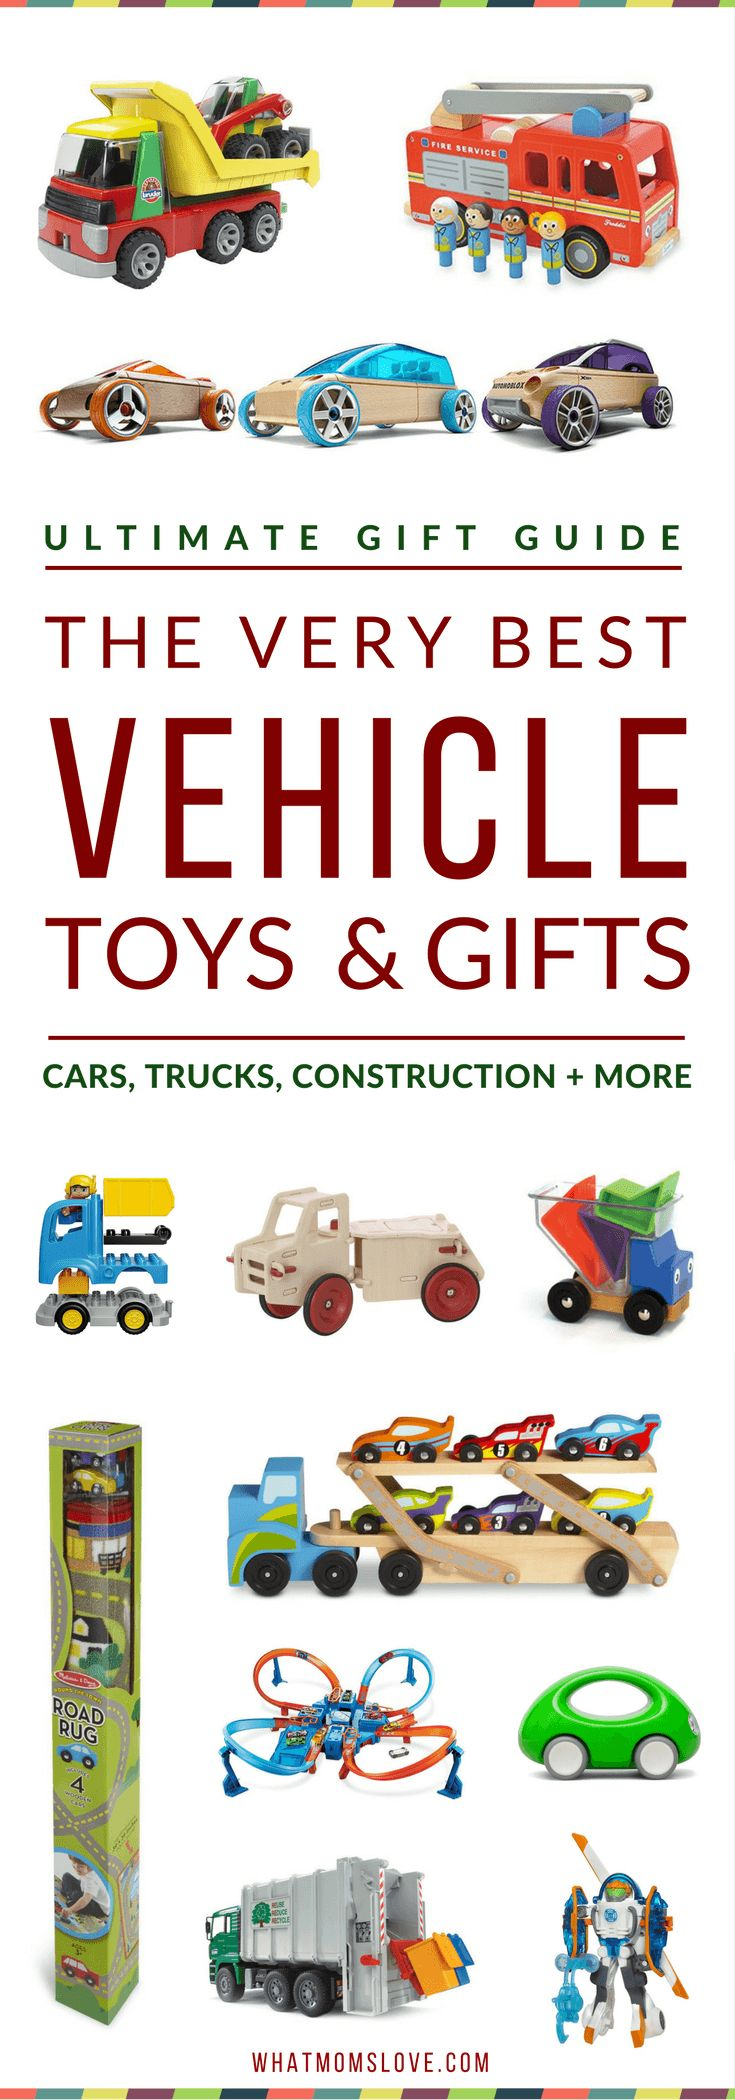 Best Vehicle Toys For Kids | Gift Ideas for kids who love Cars, Trucks and Construction | Gifts for boys from babies to toddlers, tweens and teens. Perfect for the holidays, Christmas and birthdays! via @whatmomslove